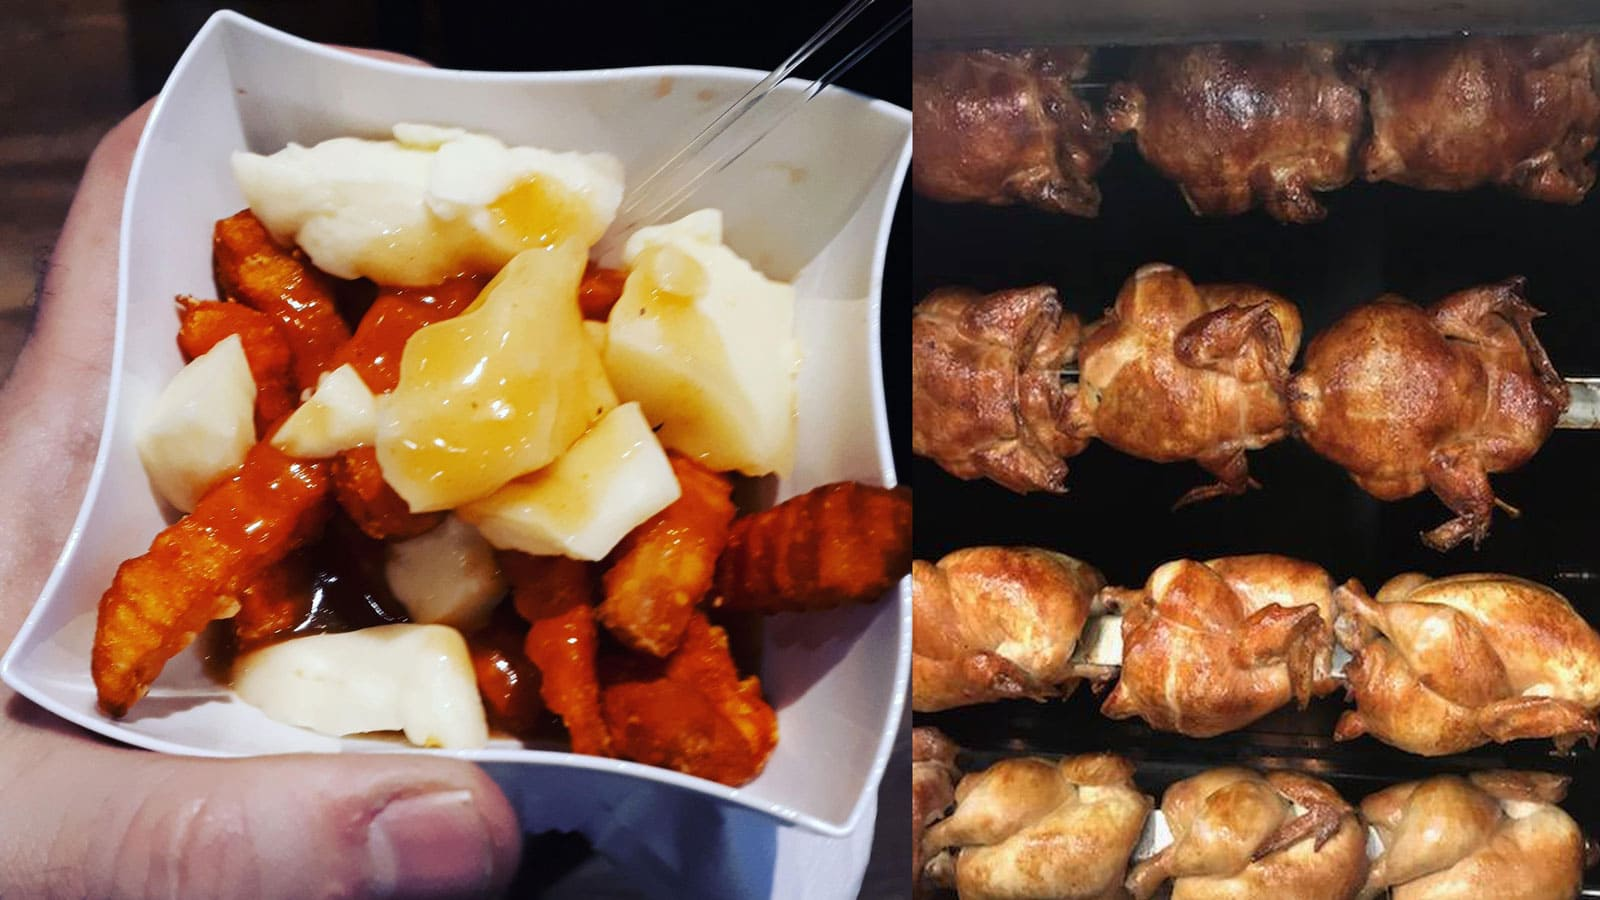 Poutine and chicken at Benny&Co.